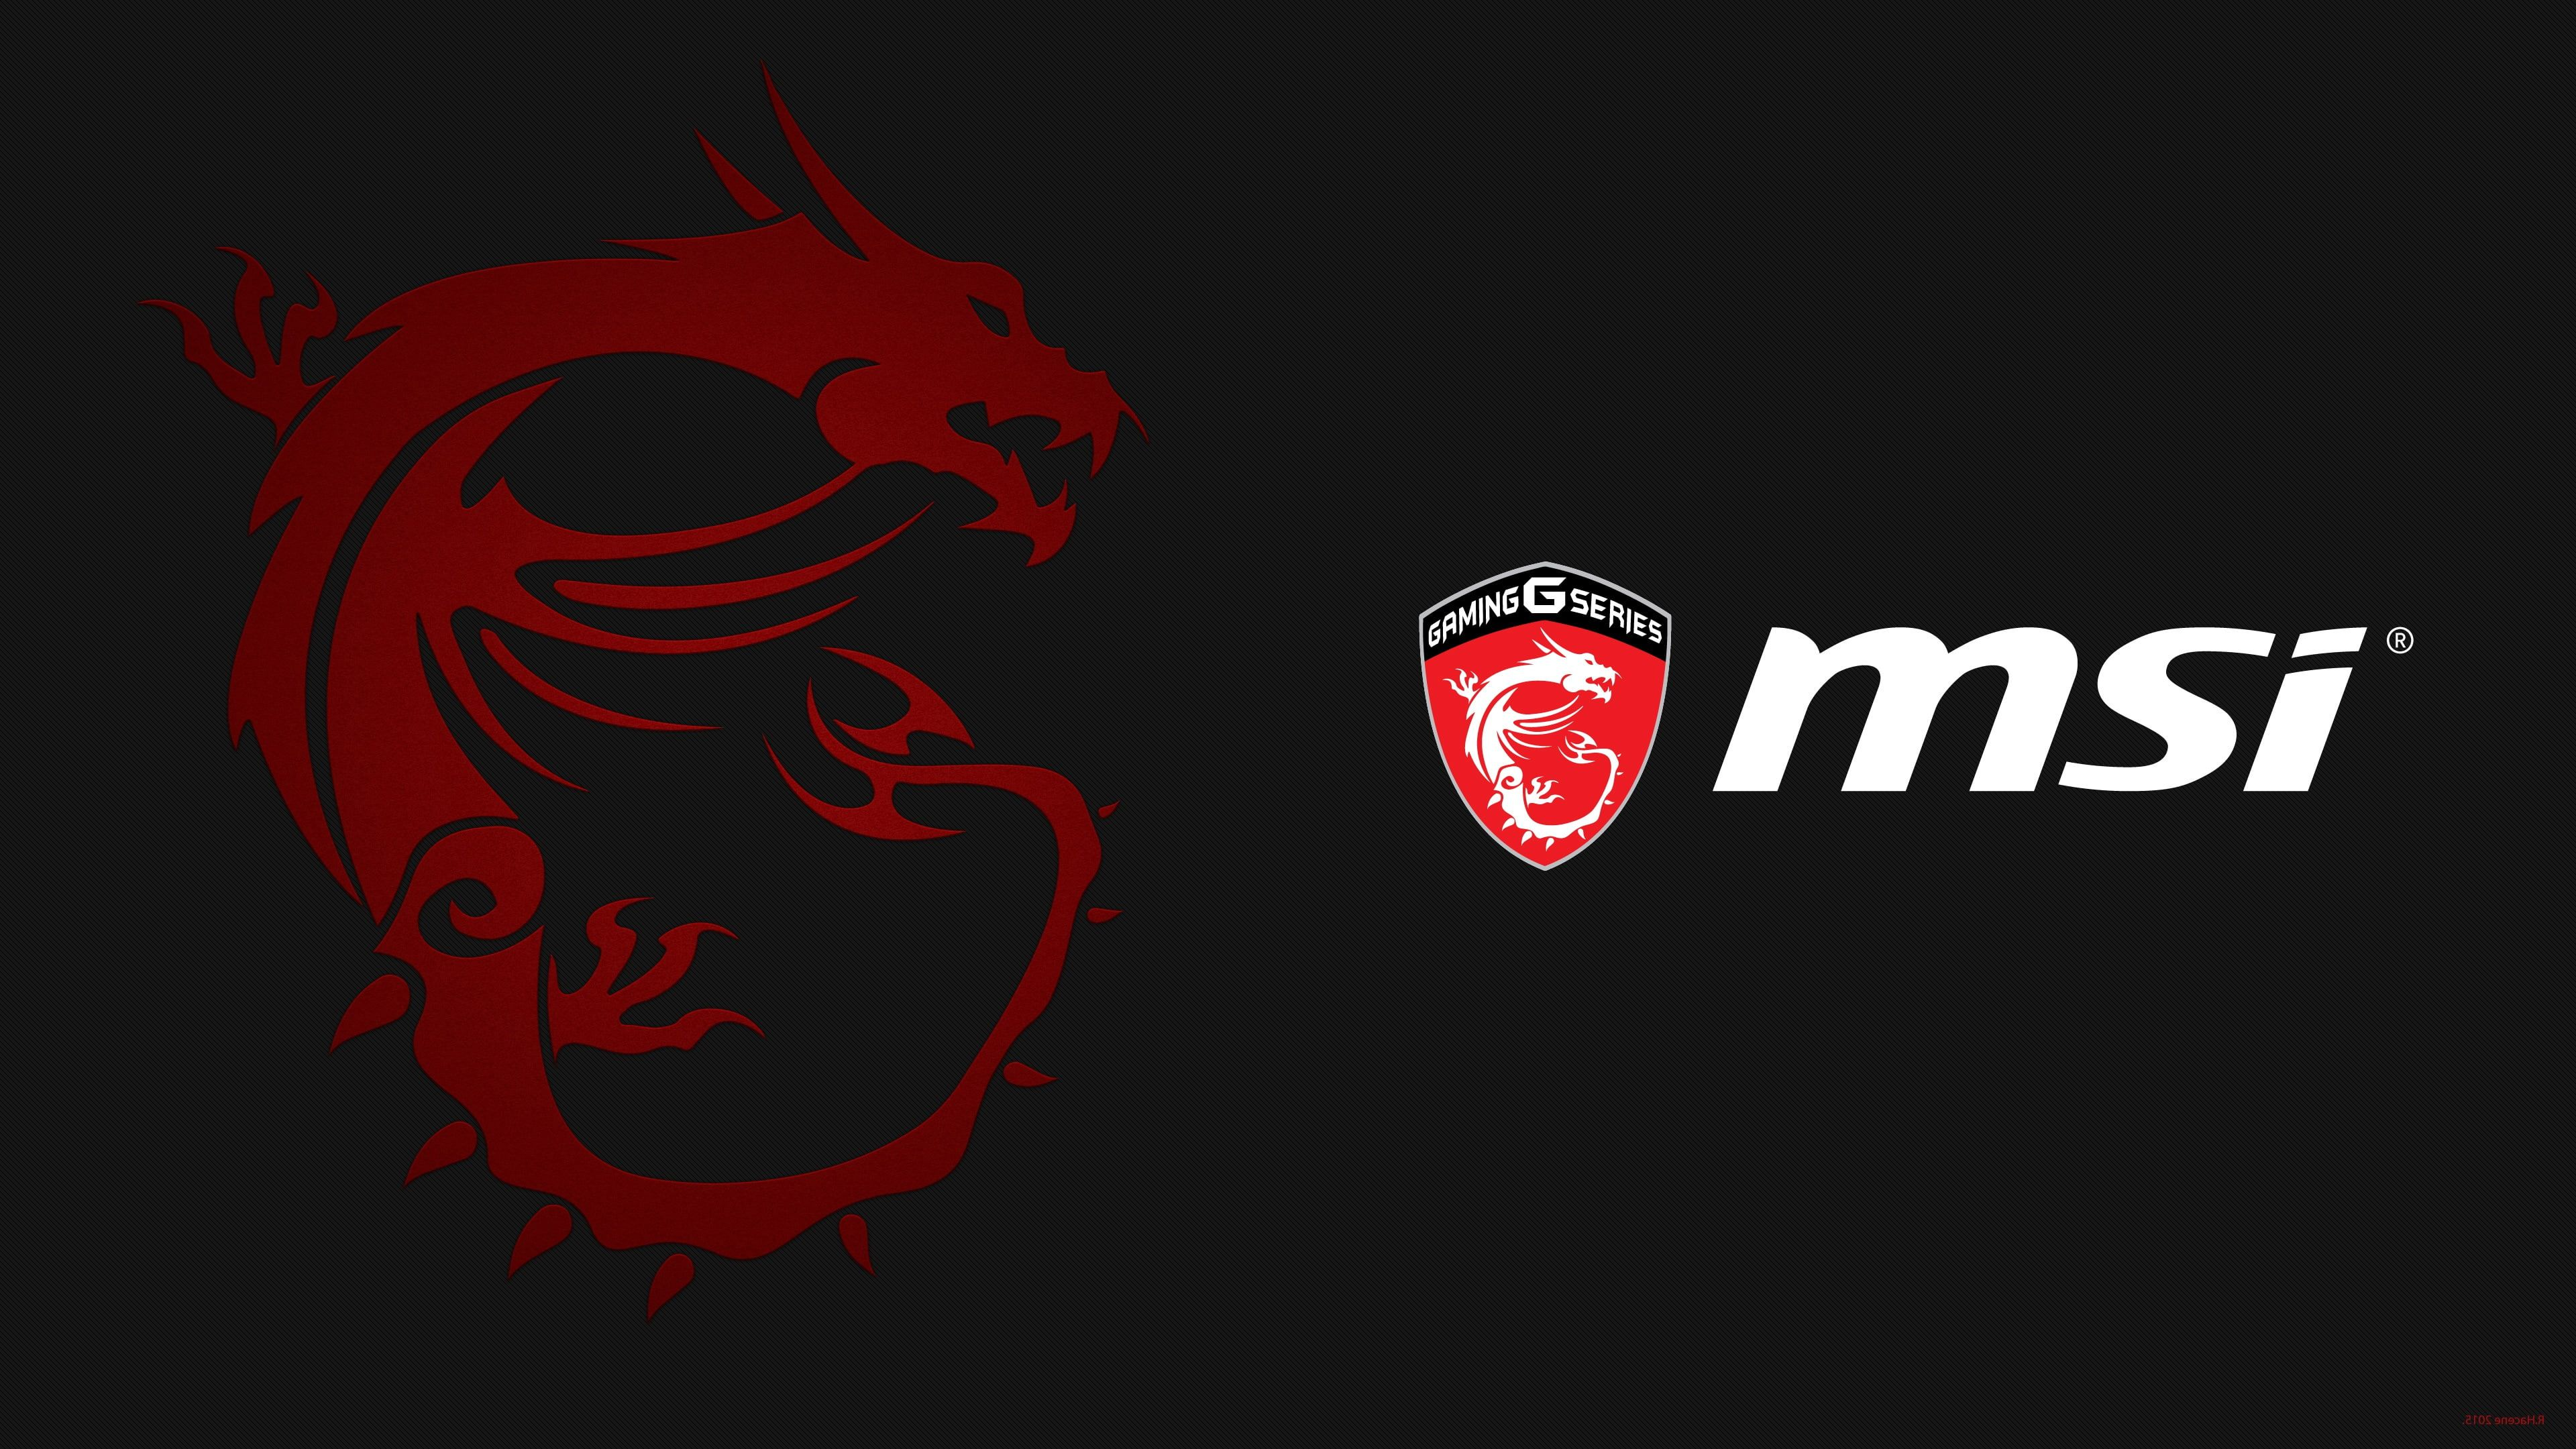 Msi Logo Wallpaper Games Robocity Msi 4k Wallpaper Hdwallpaper Desktop In 2020 Msi Logo Msi Logo Wallpaper Hd